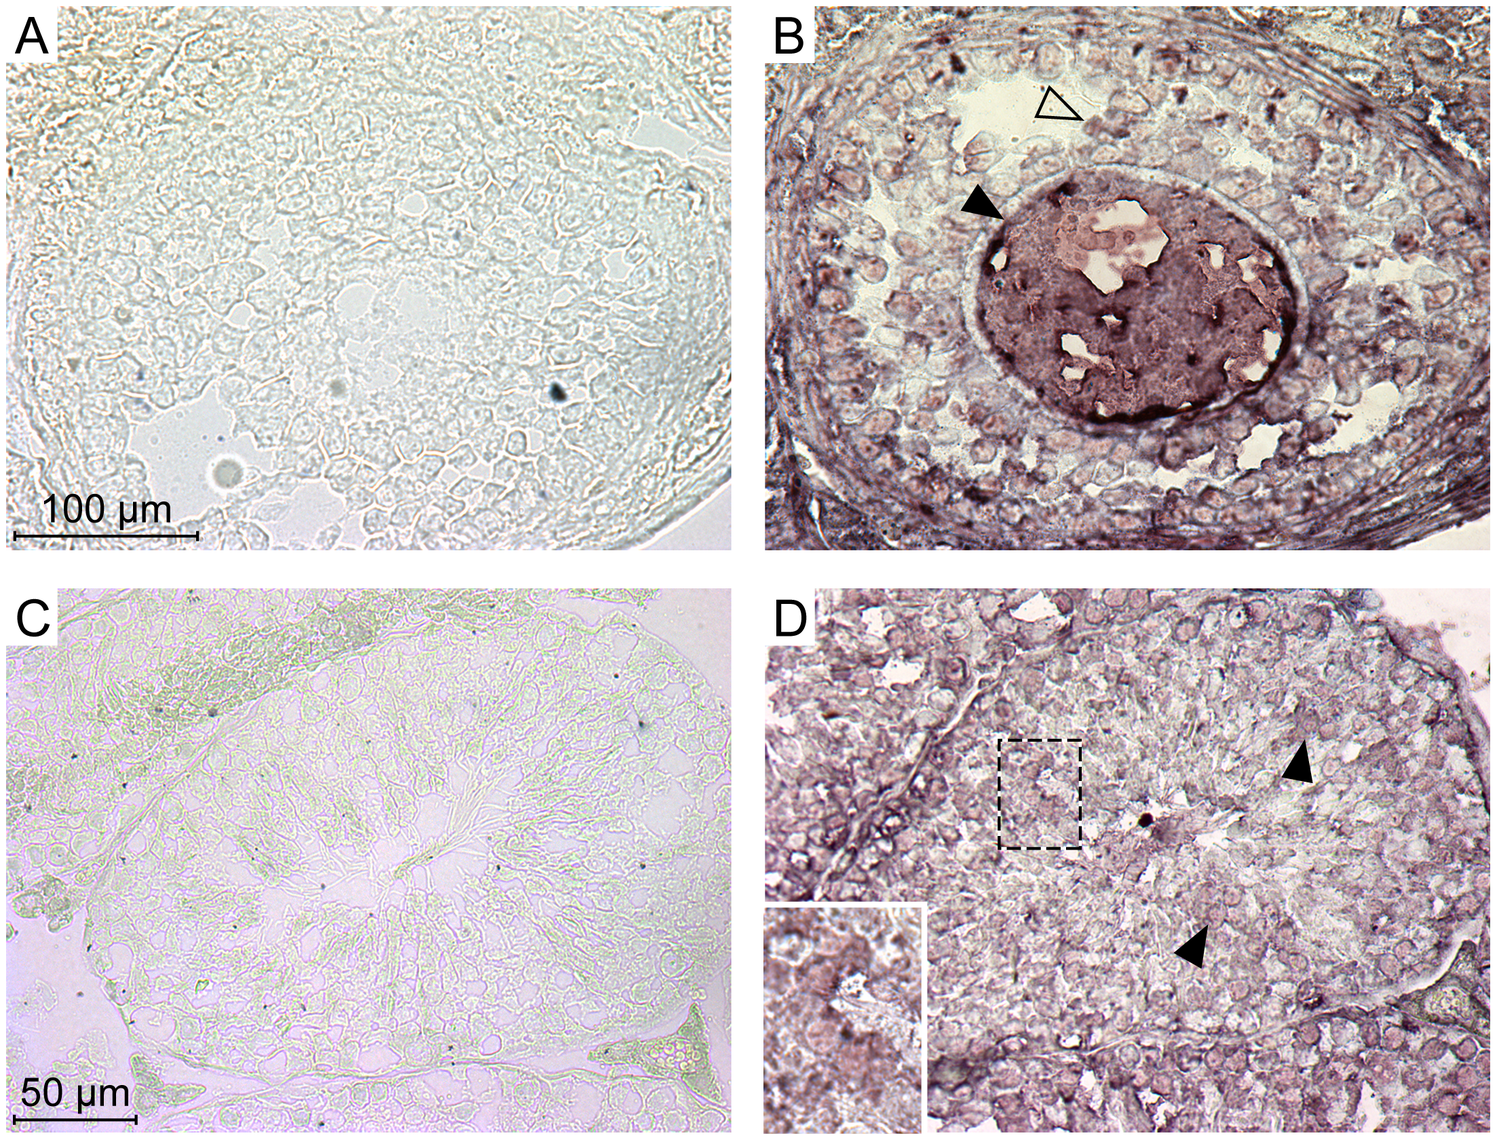 Expression of the Ephrin A proteins in mouse ovary and testis detected by immunohistochemistry.